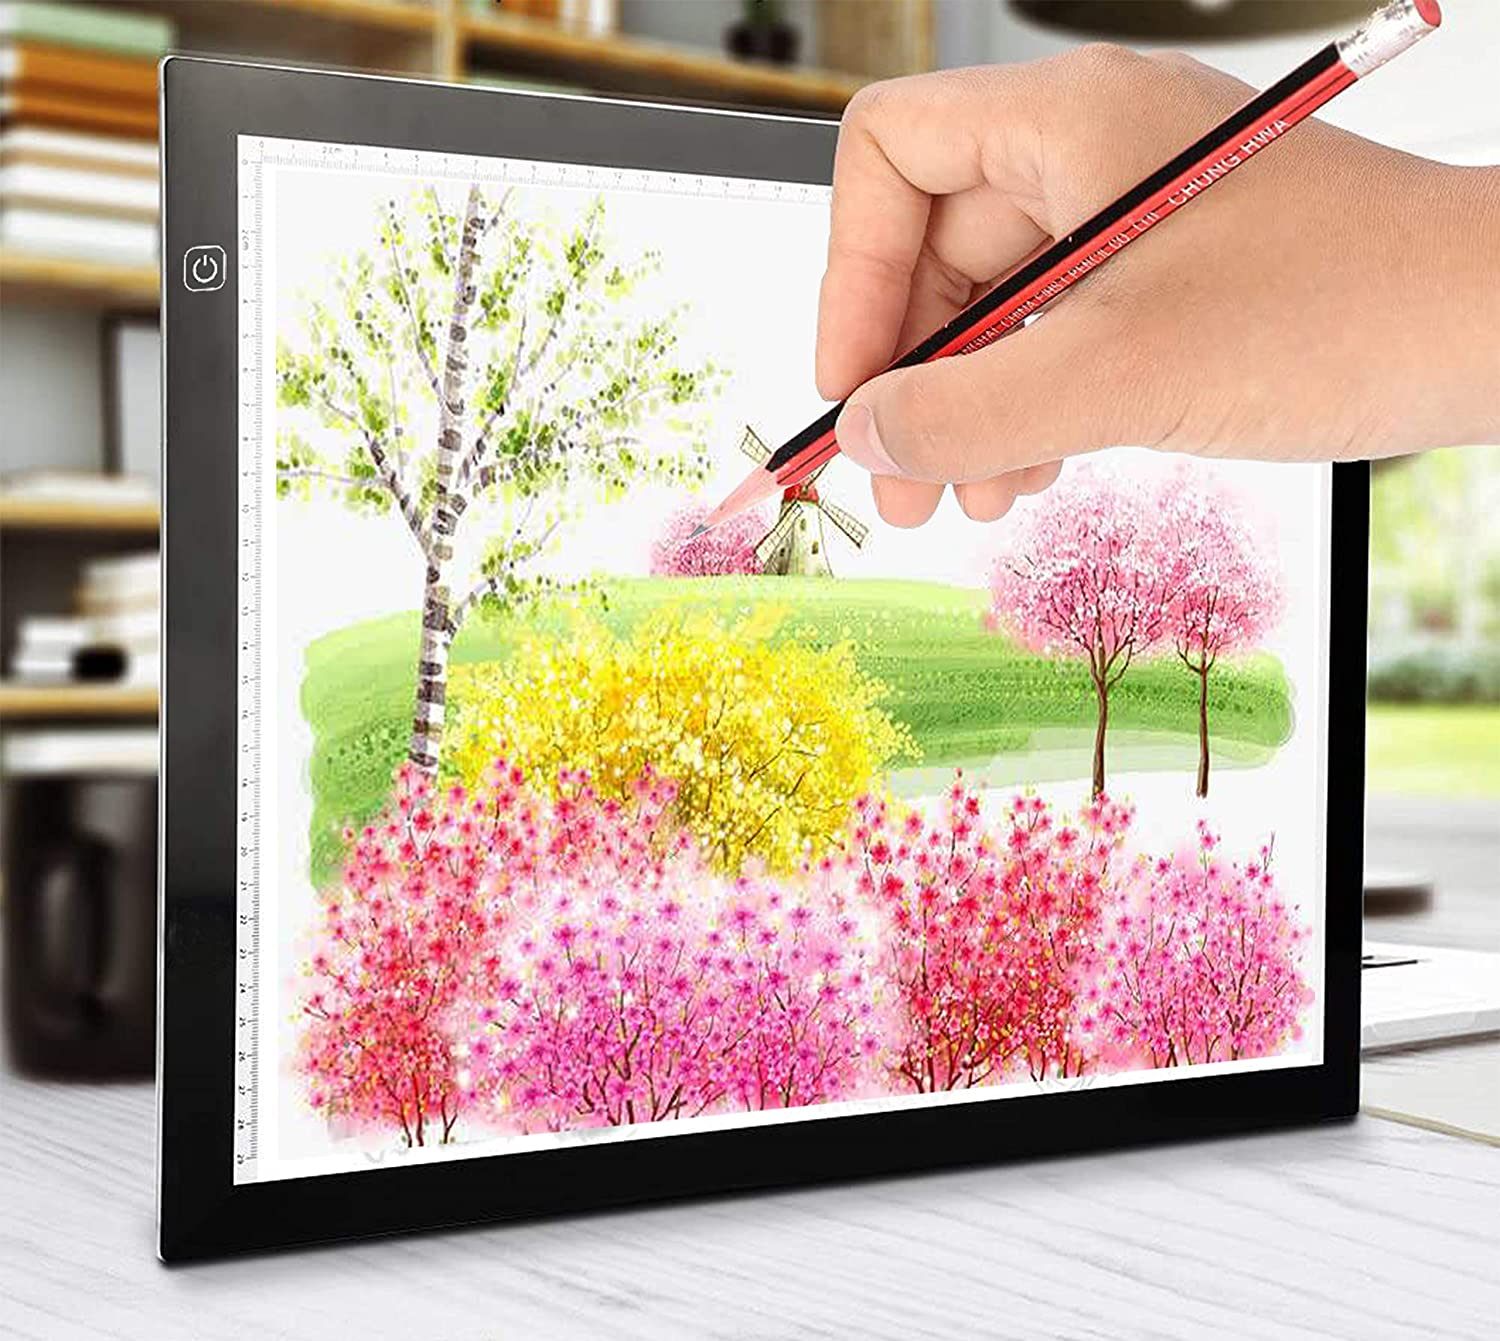 Ultra-Thin Portable LED Light Box Tracer USB Power Cable Dimmable Brightness Artcraft Tracing Light Pad Light Box for Diamond Paint Artists Drawing Sketching Designing Stencilling A4